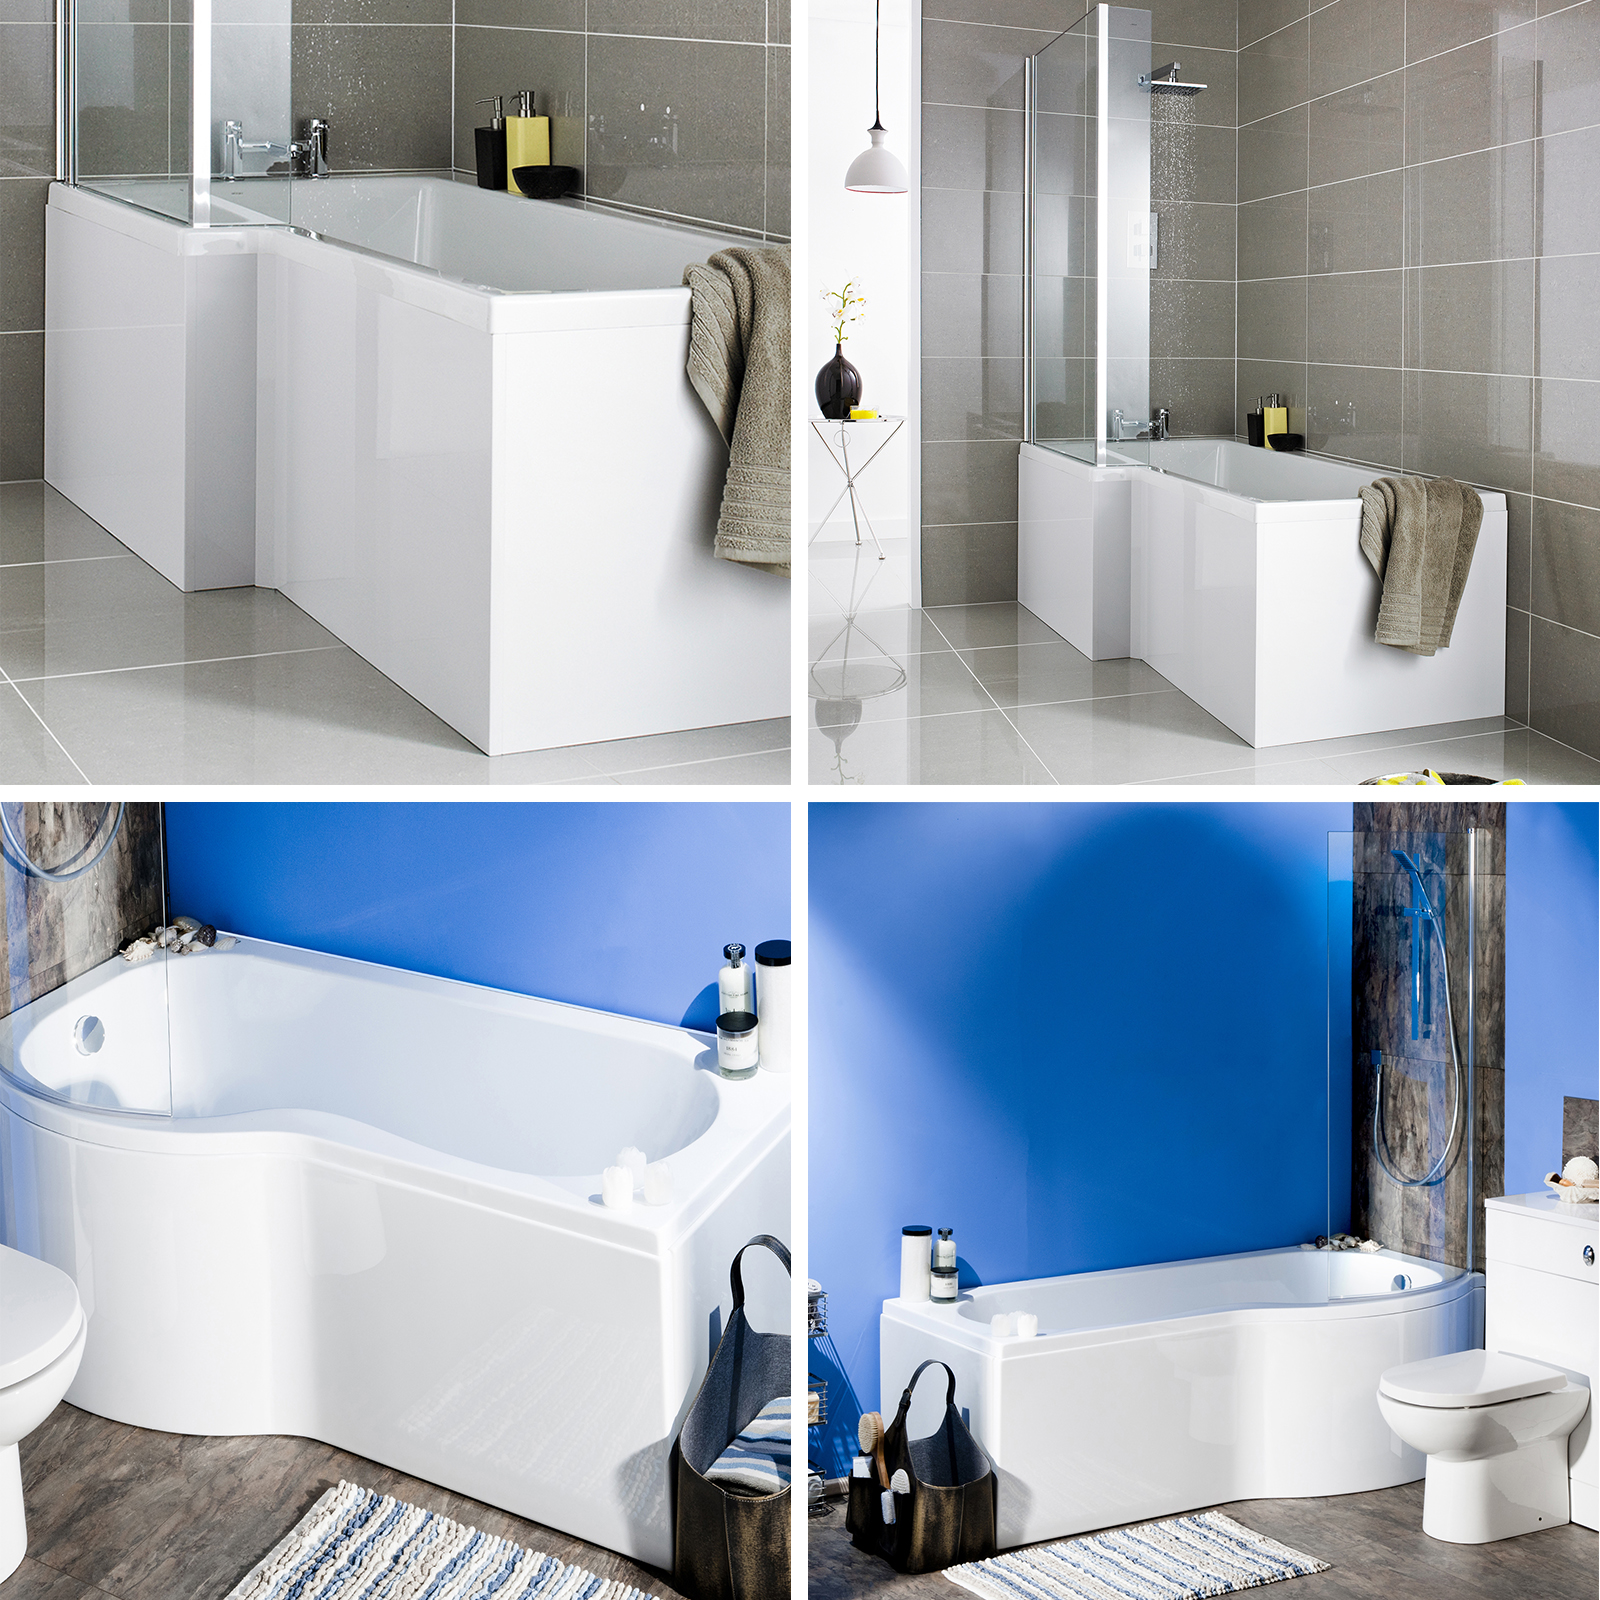 P Shaped Shower Baths Walk In Shower And Jacuzzi Tub Eclectic Other Metro By